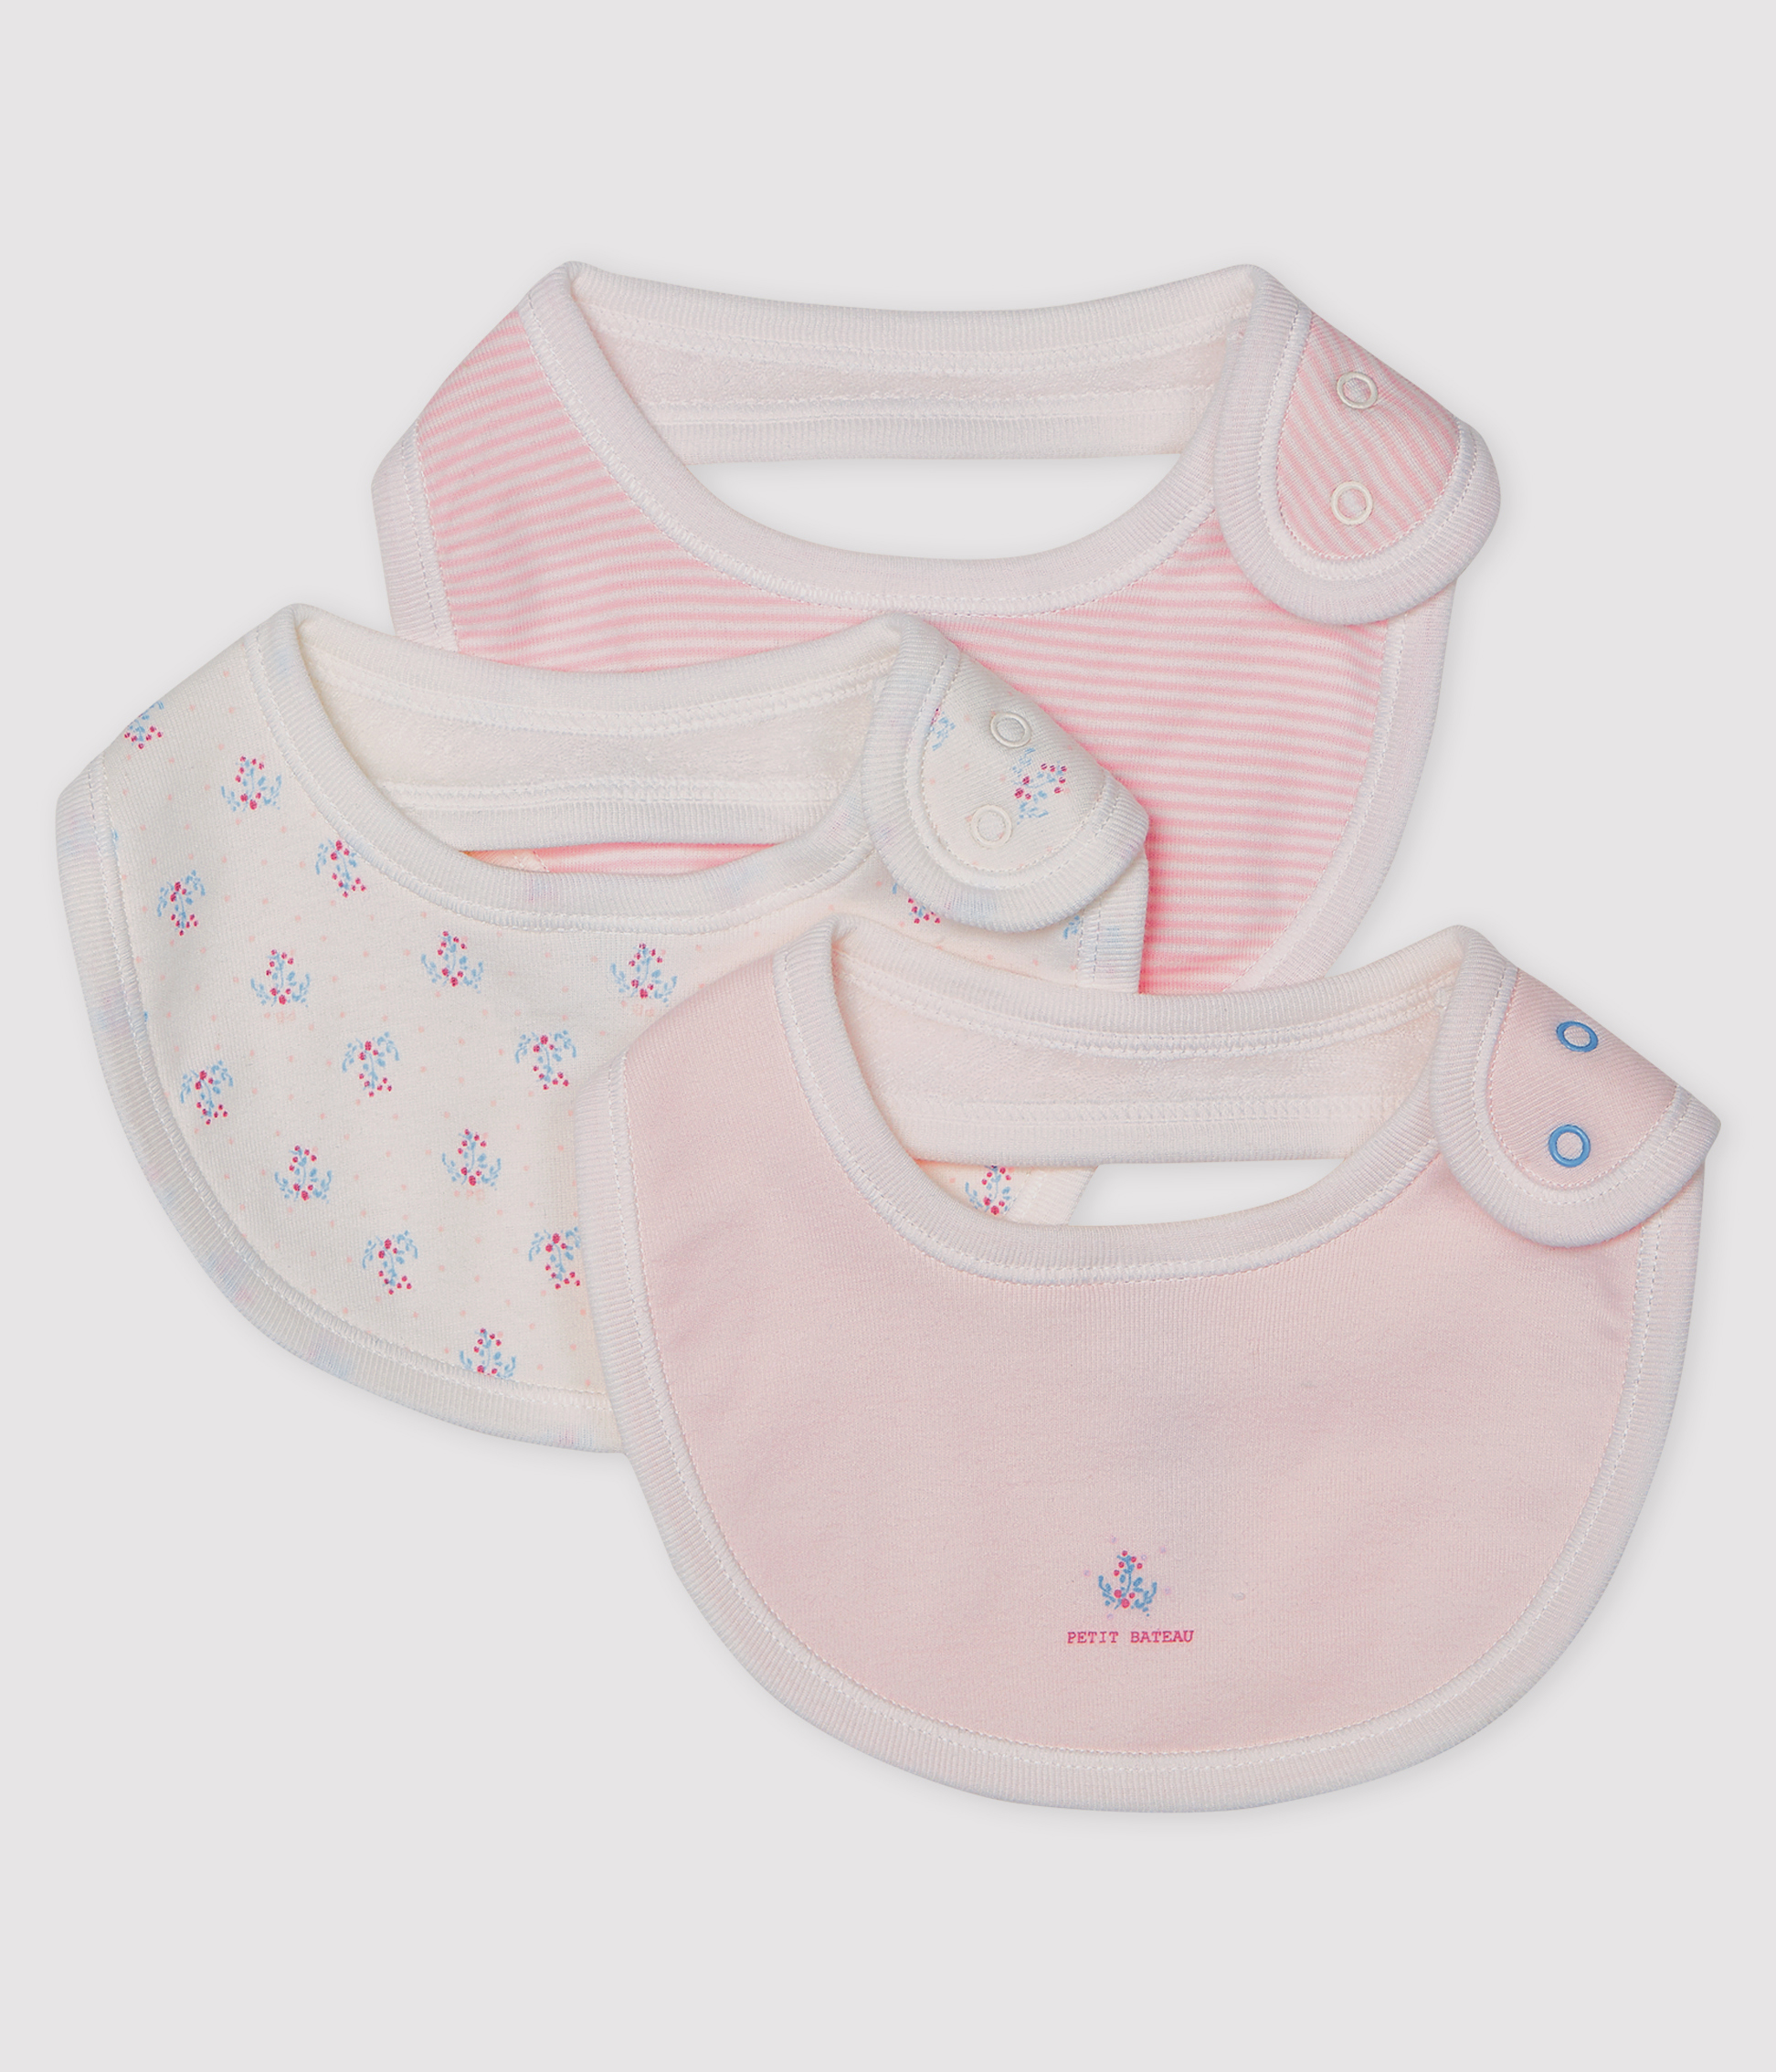 Baby Girls' Rib Knit Bibs - 3-Piece Set